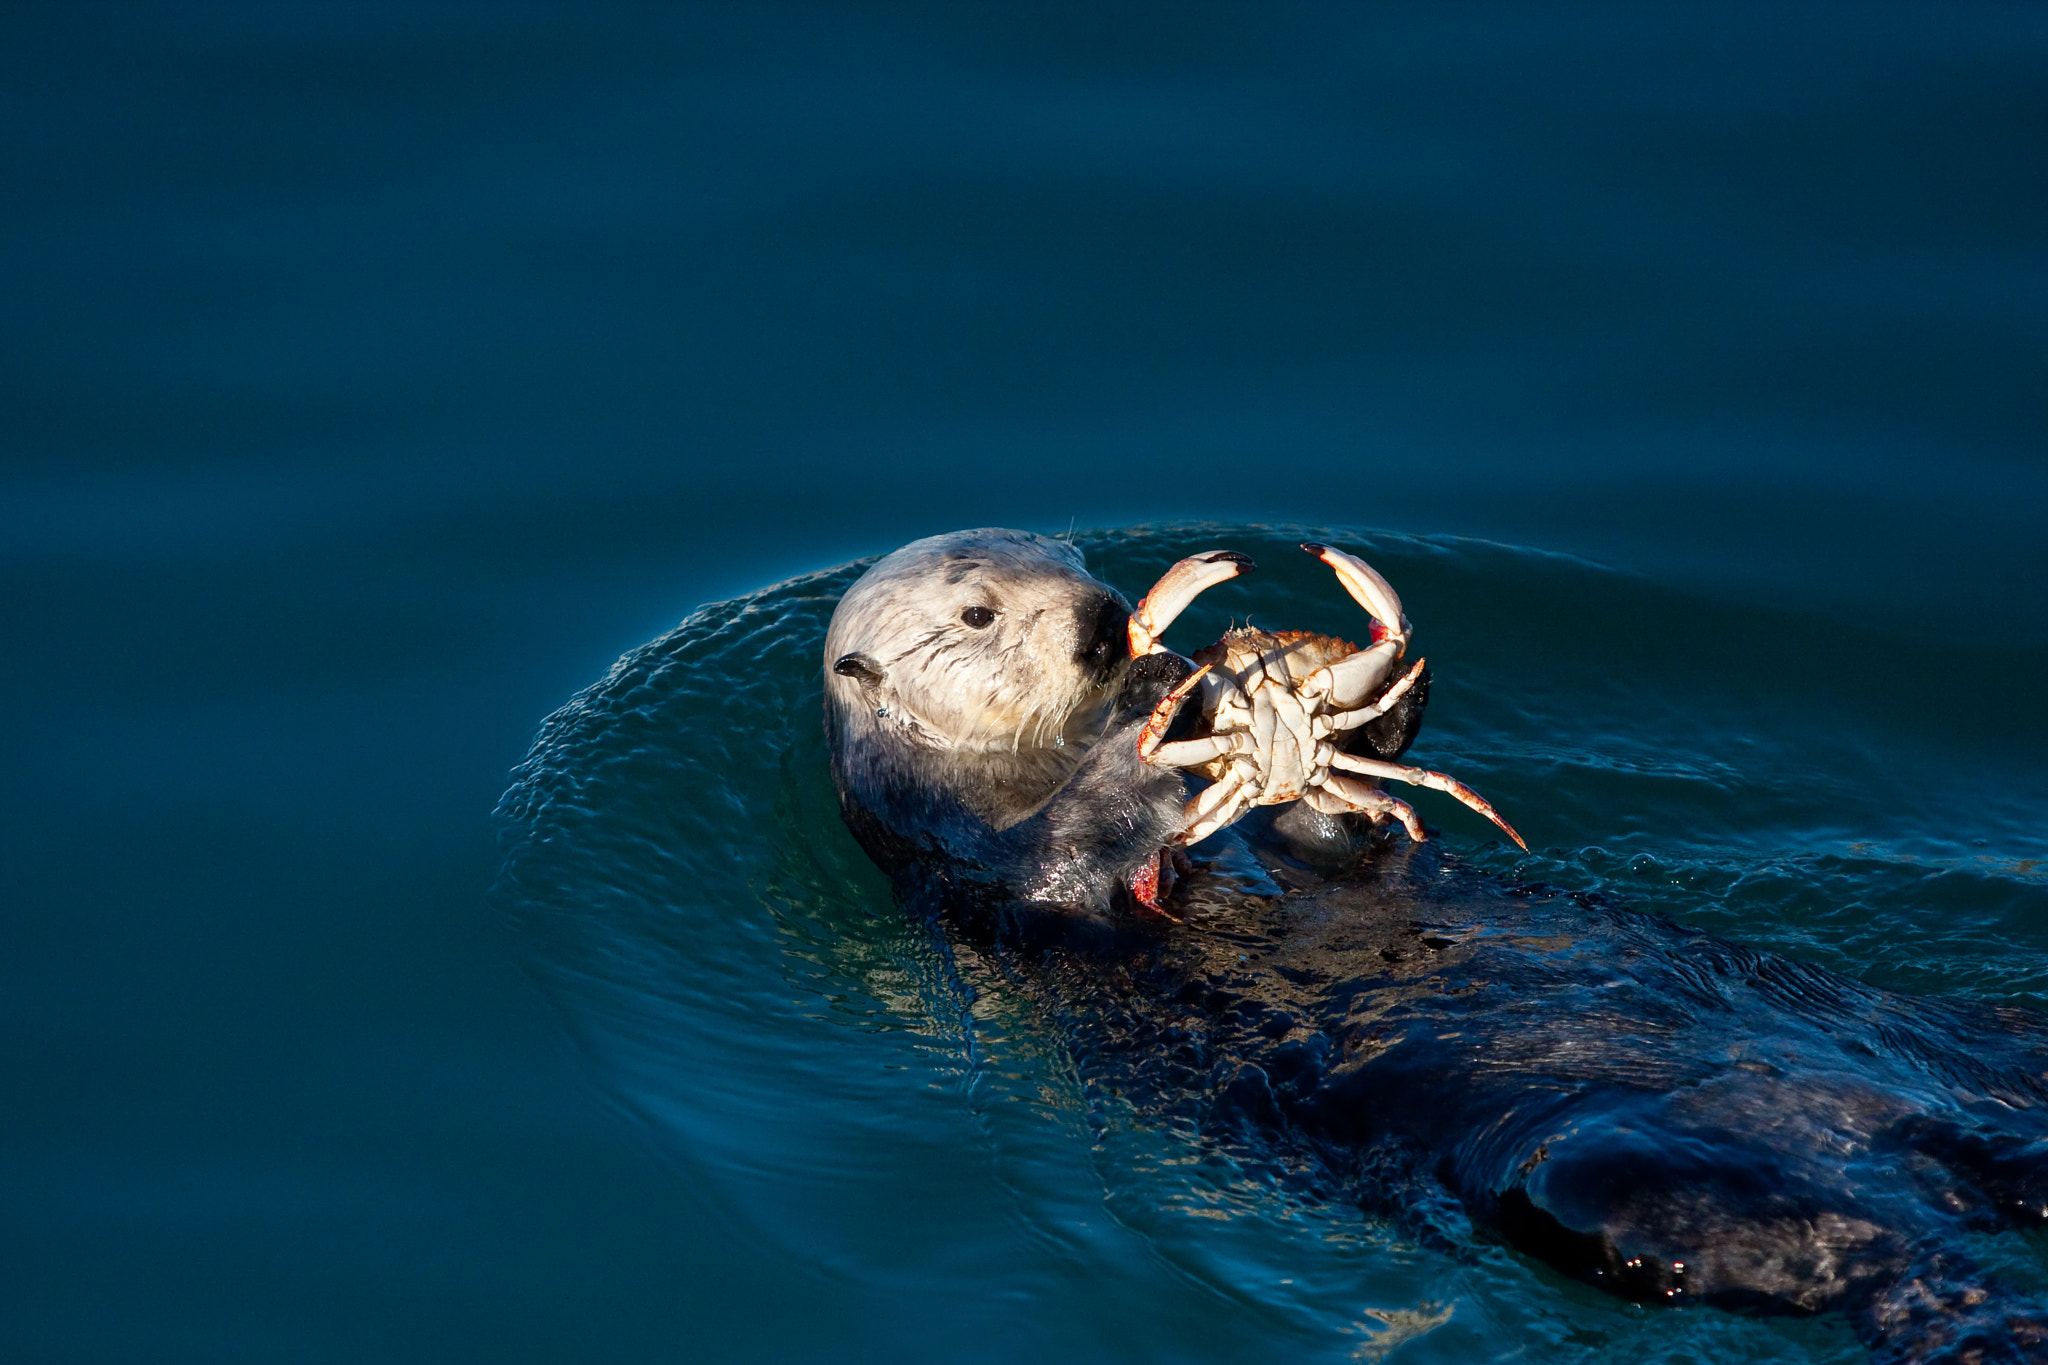 Photograph Sea Otter by Jean-Edouard Rozey on 500px